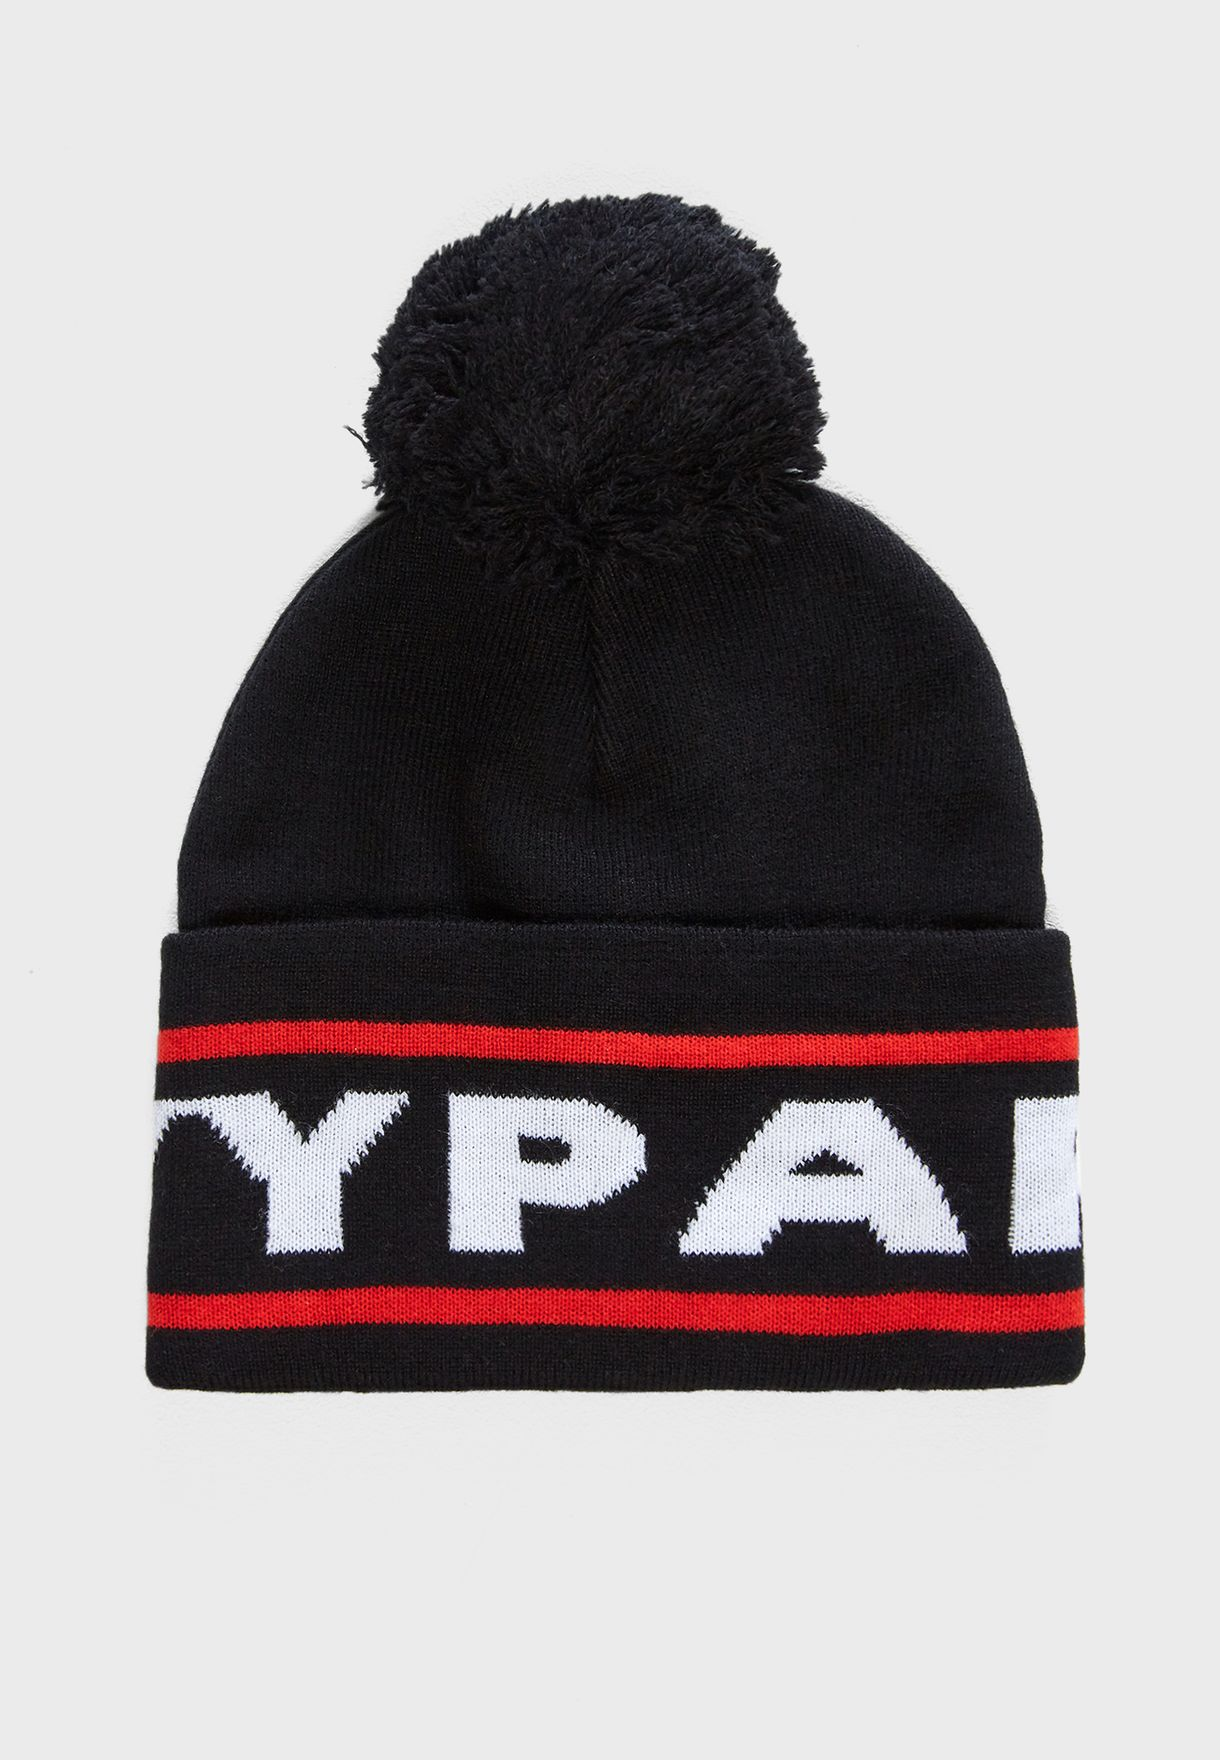 Shop Ivy Park black Big Logo Beanie 29ACA309ABLK for Women in UAE ... 4ec969faeab4